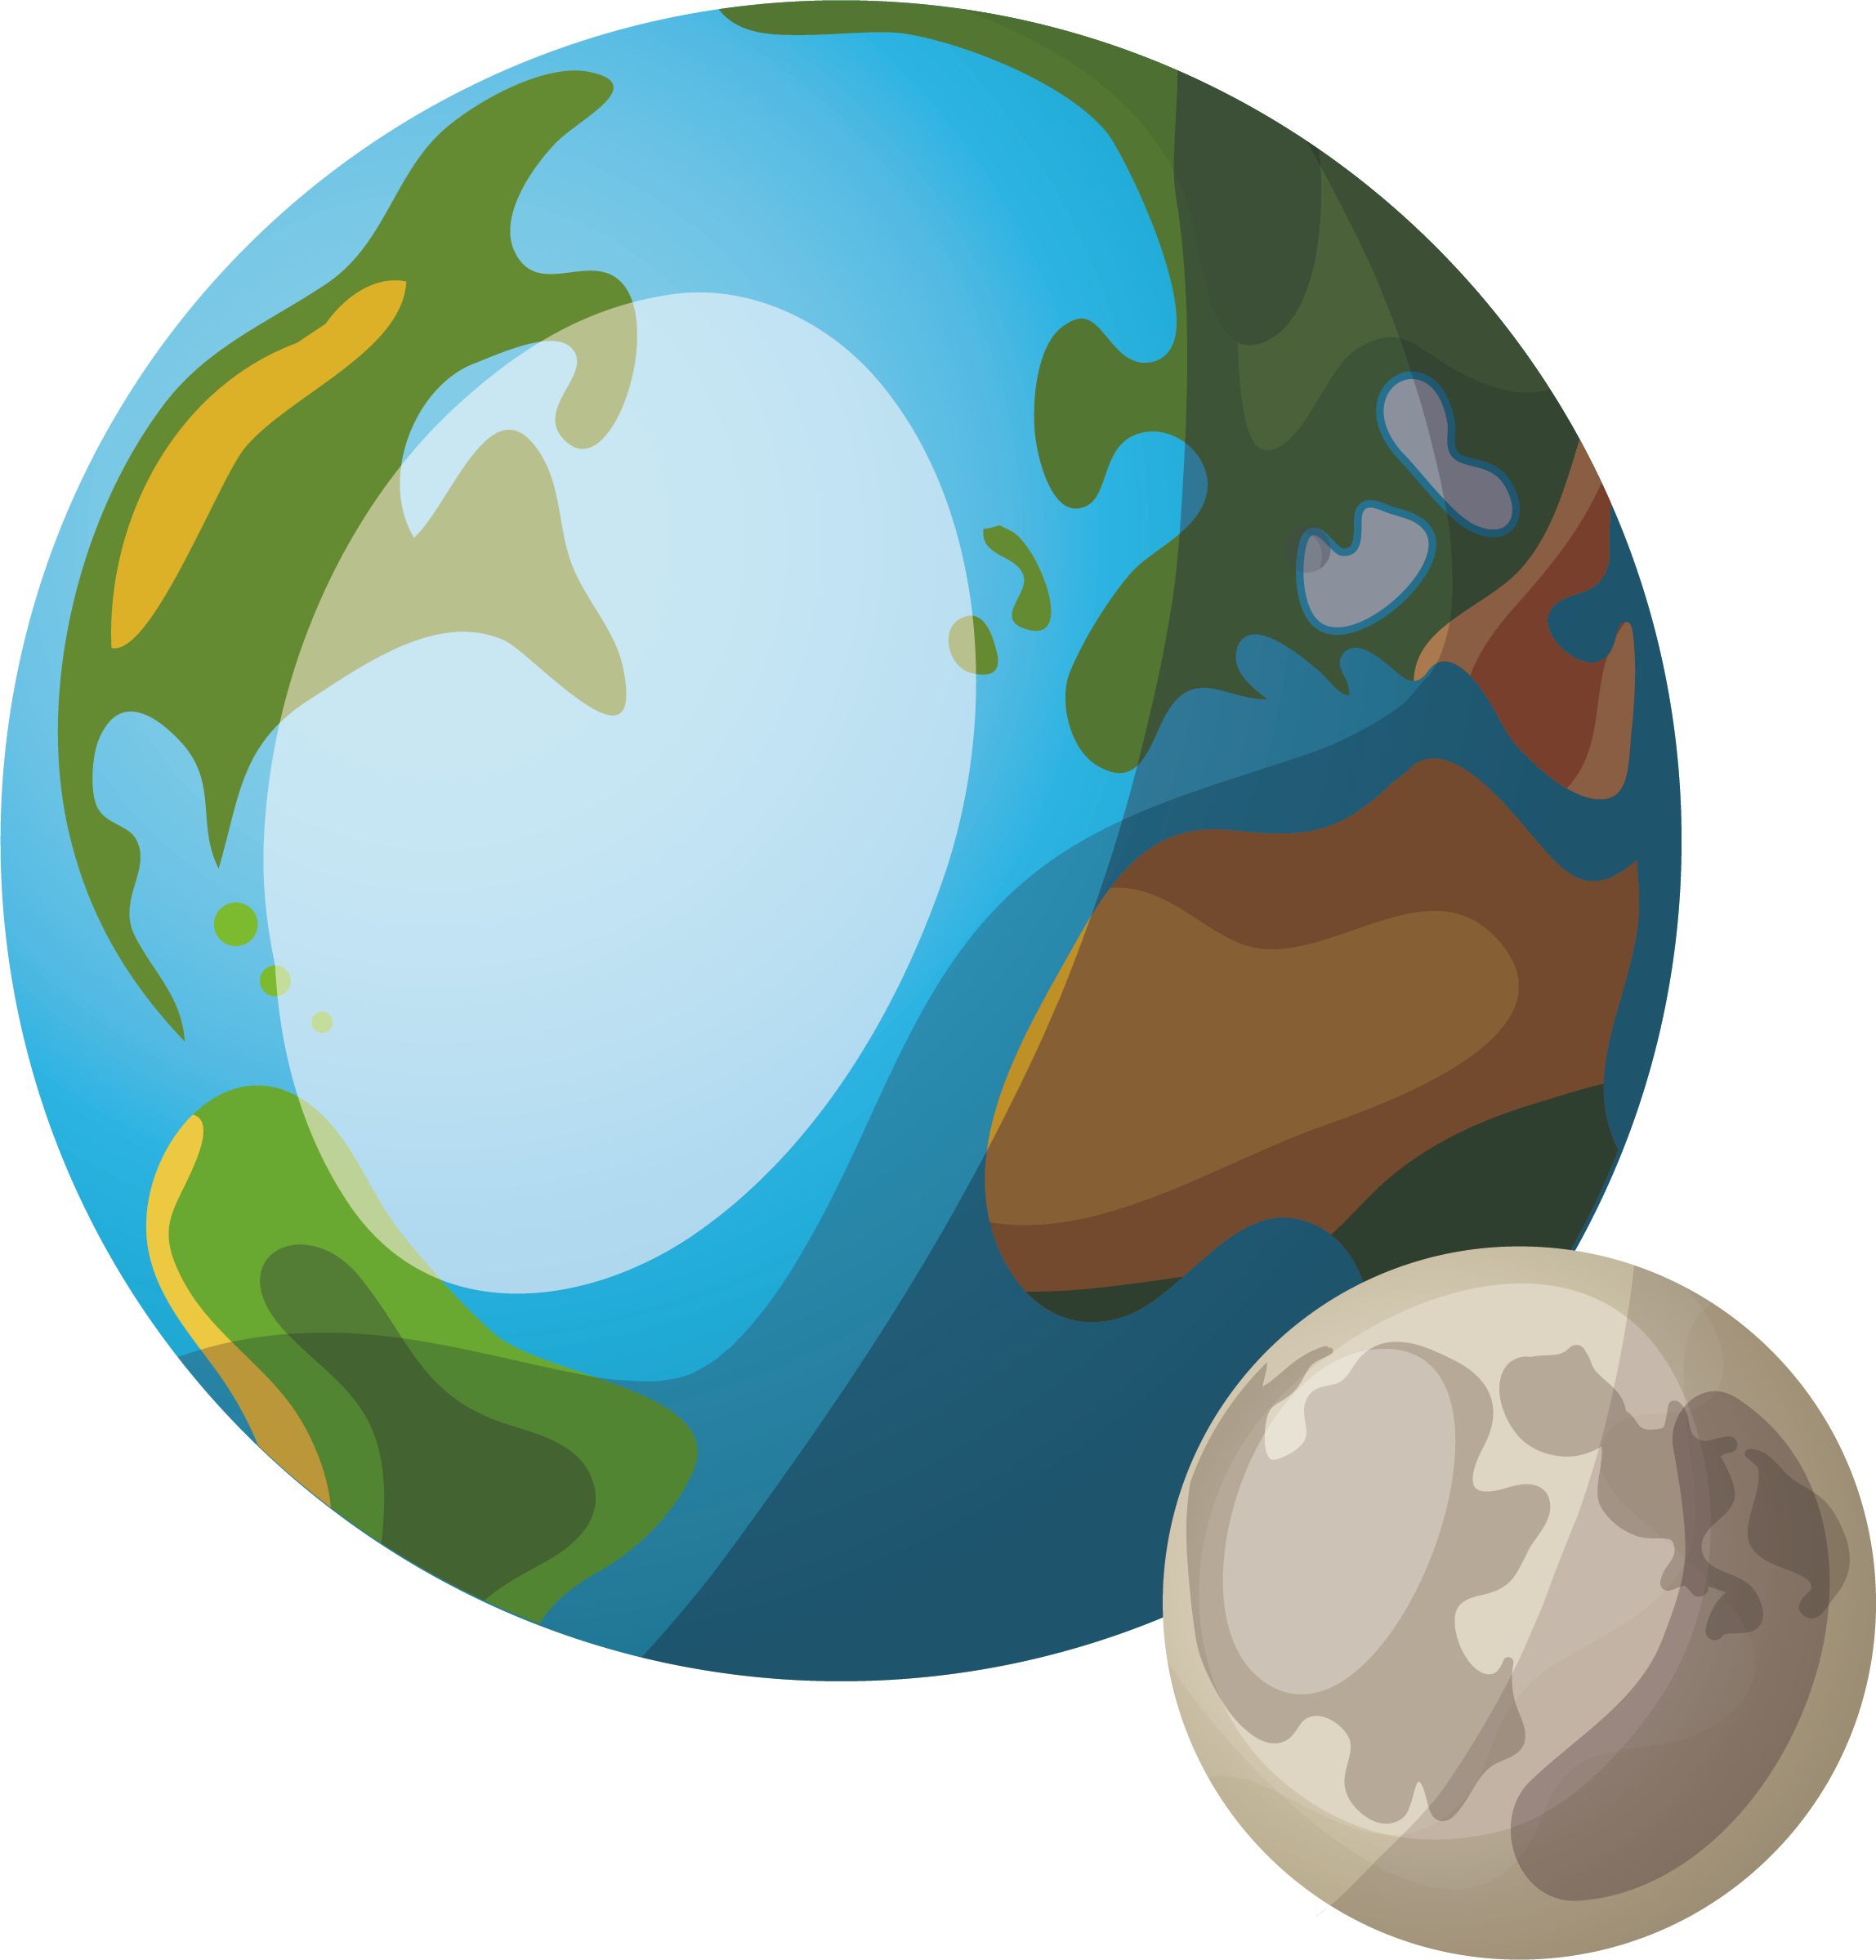 Planets clipart real planet. Earth cartoon two transprent